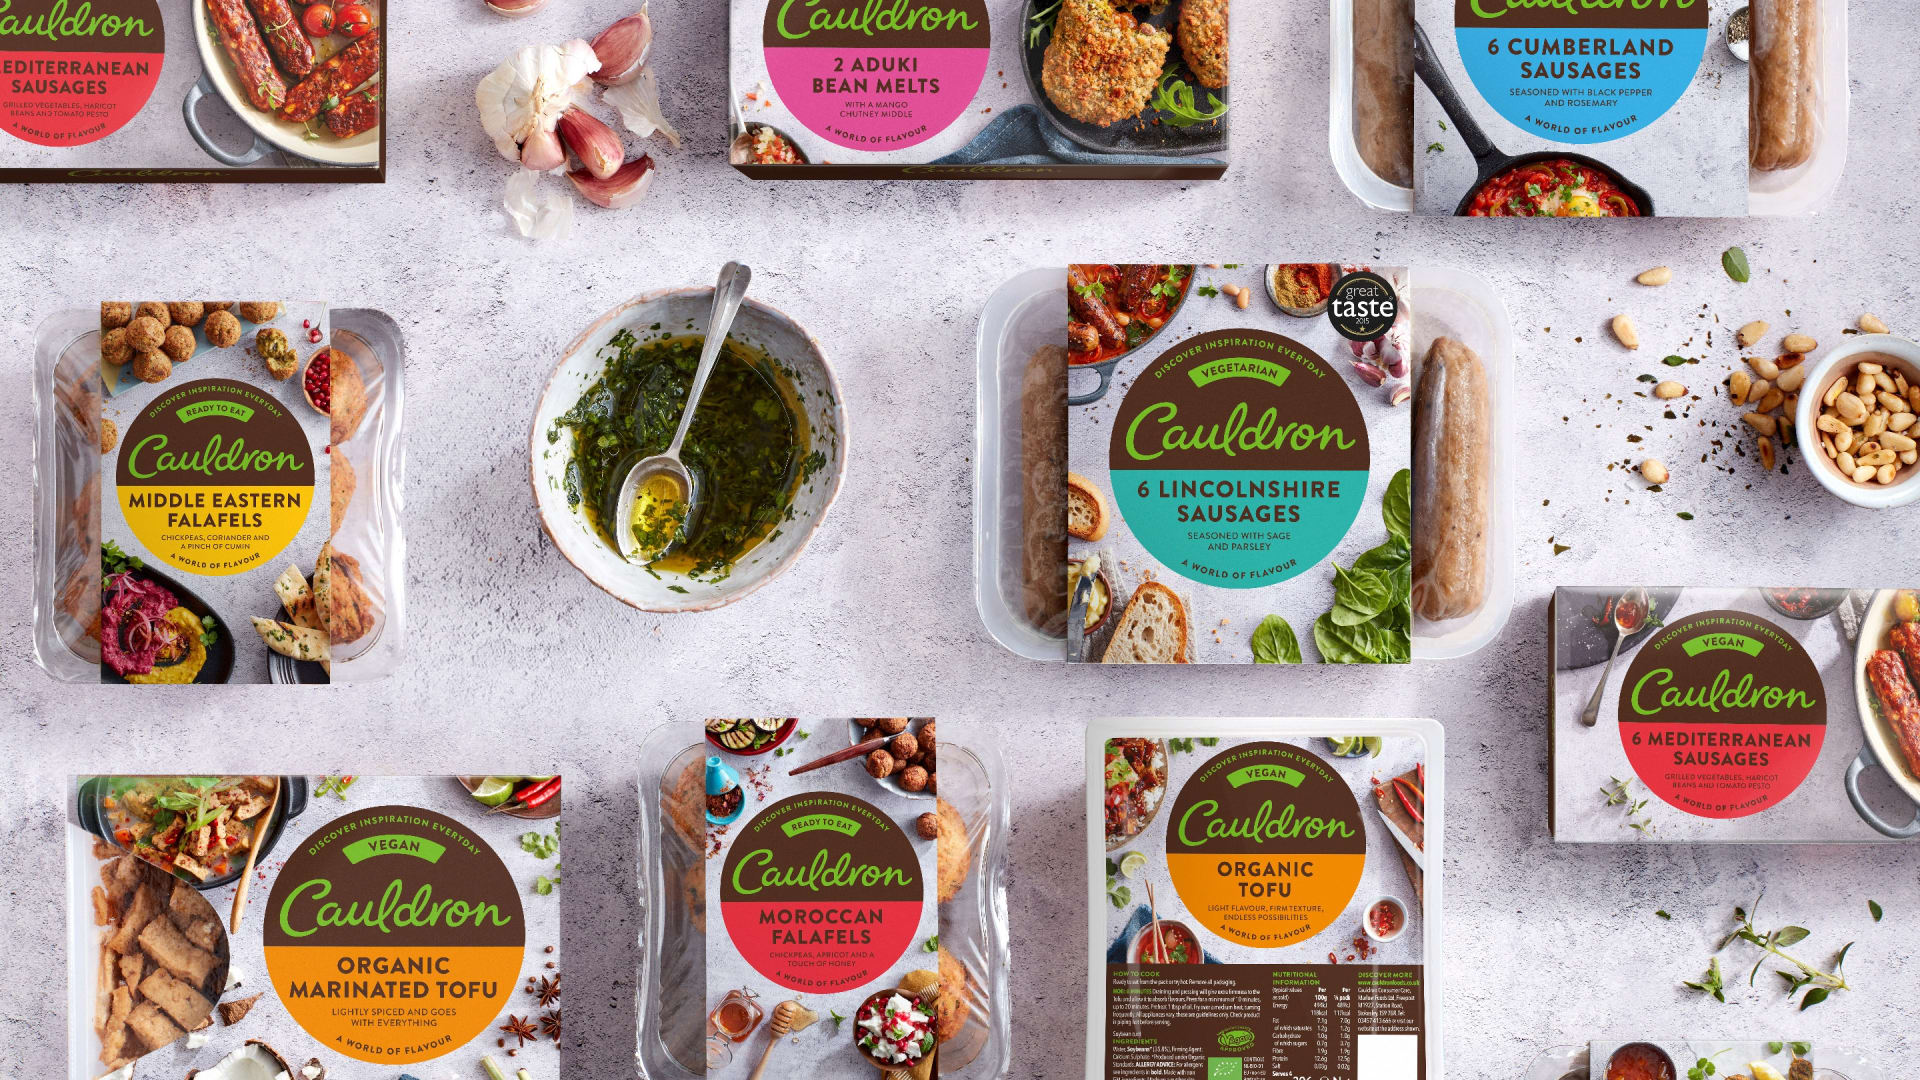 Cauldron brand identity packaging range